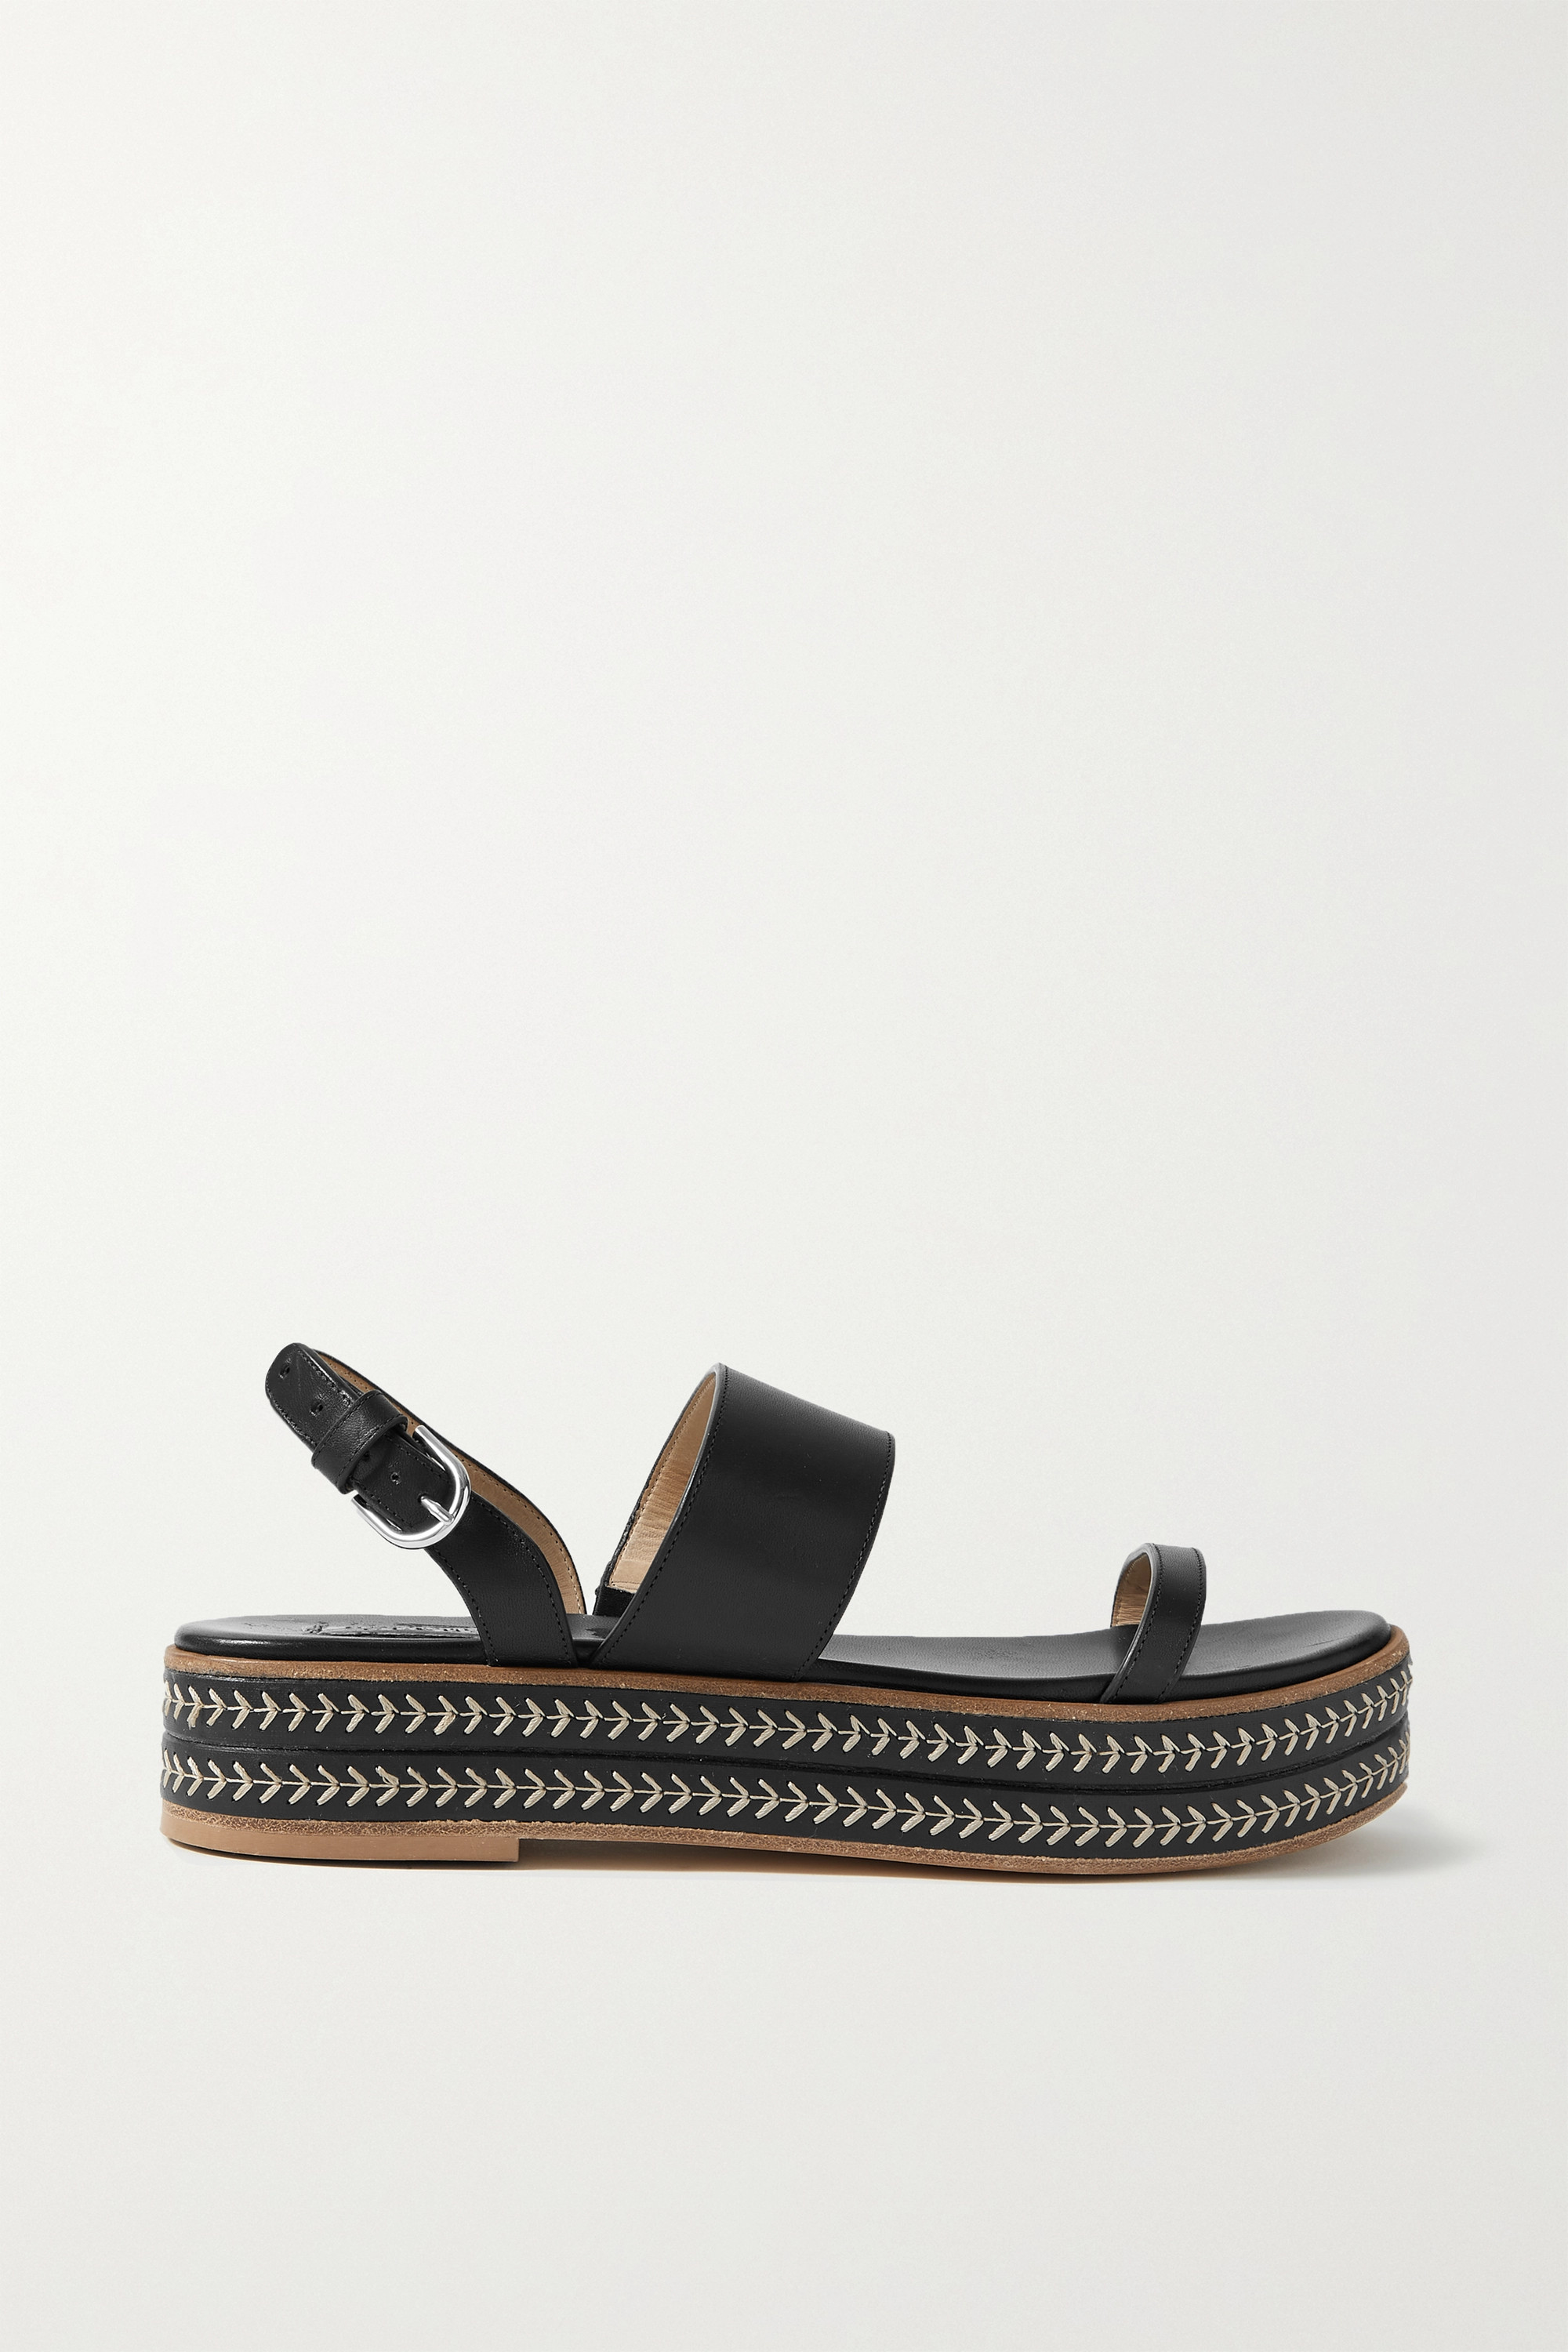 GABRIELA HEARST Graham embroidered leather slingback platform sandals